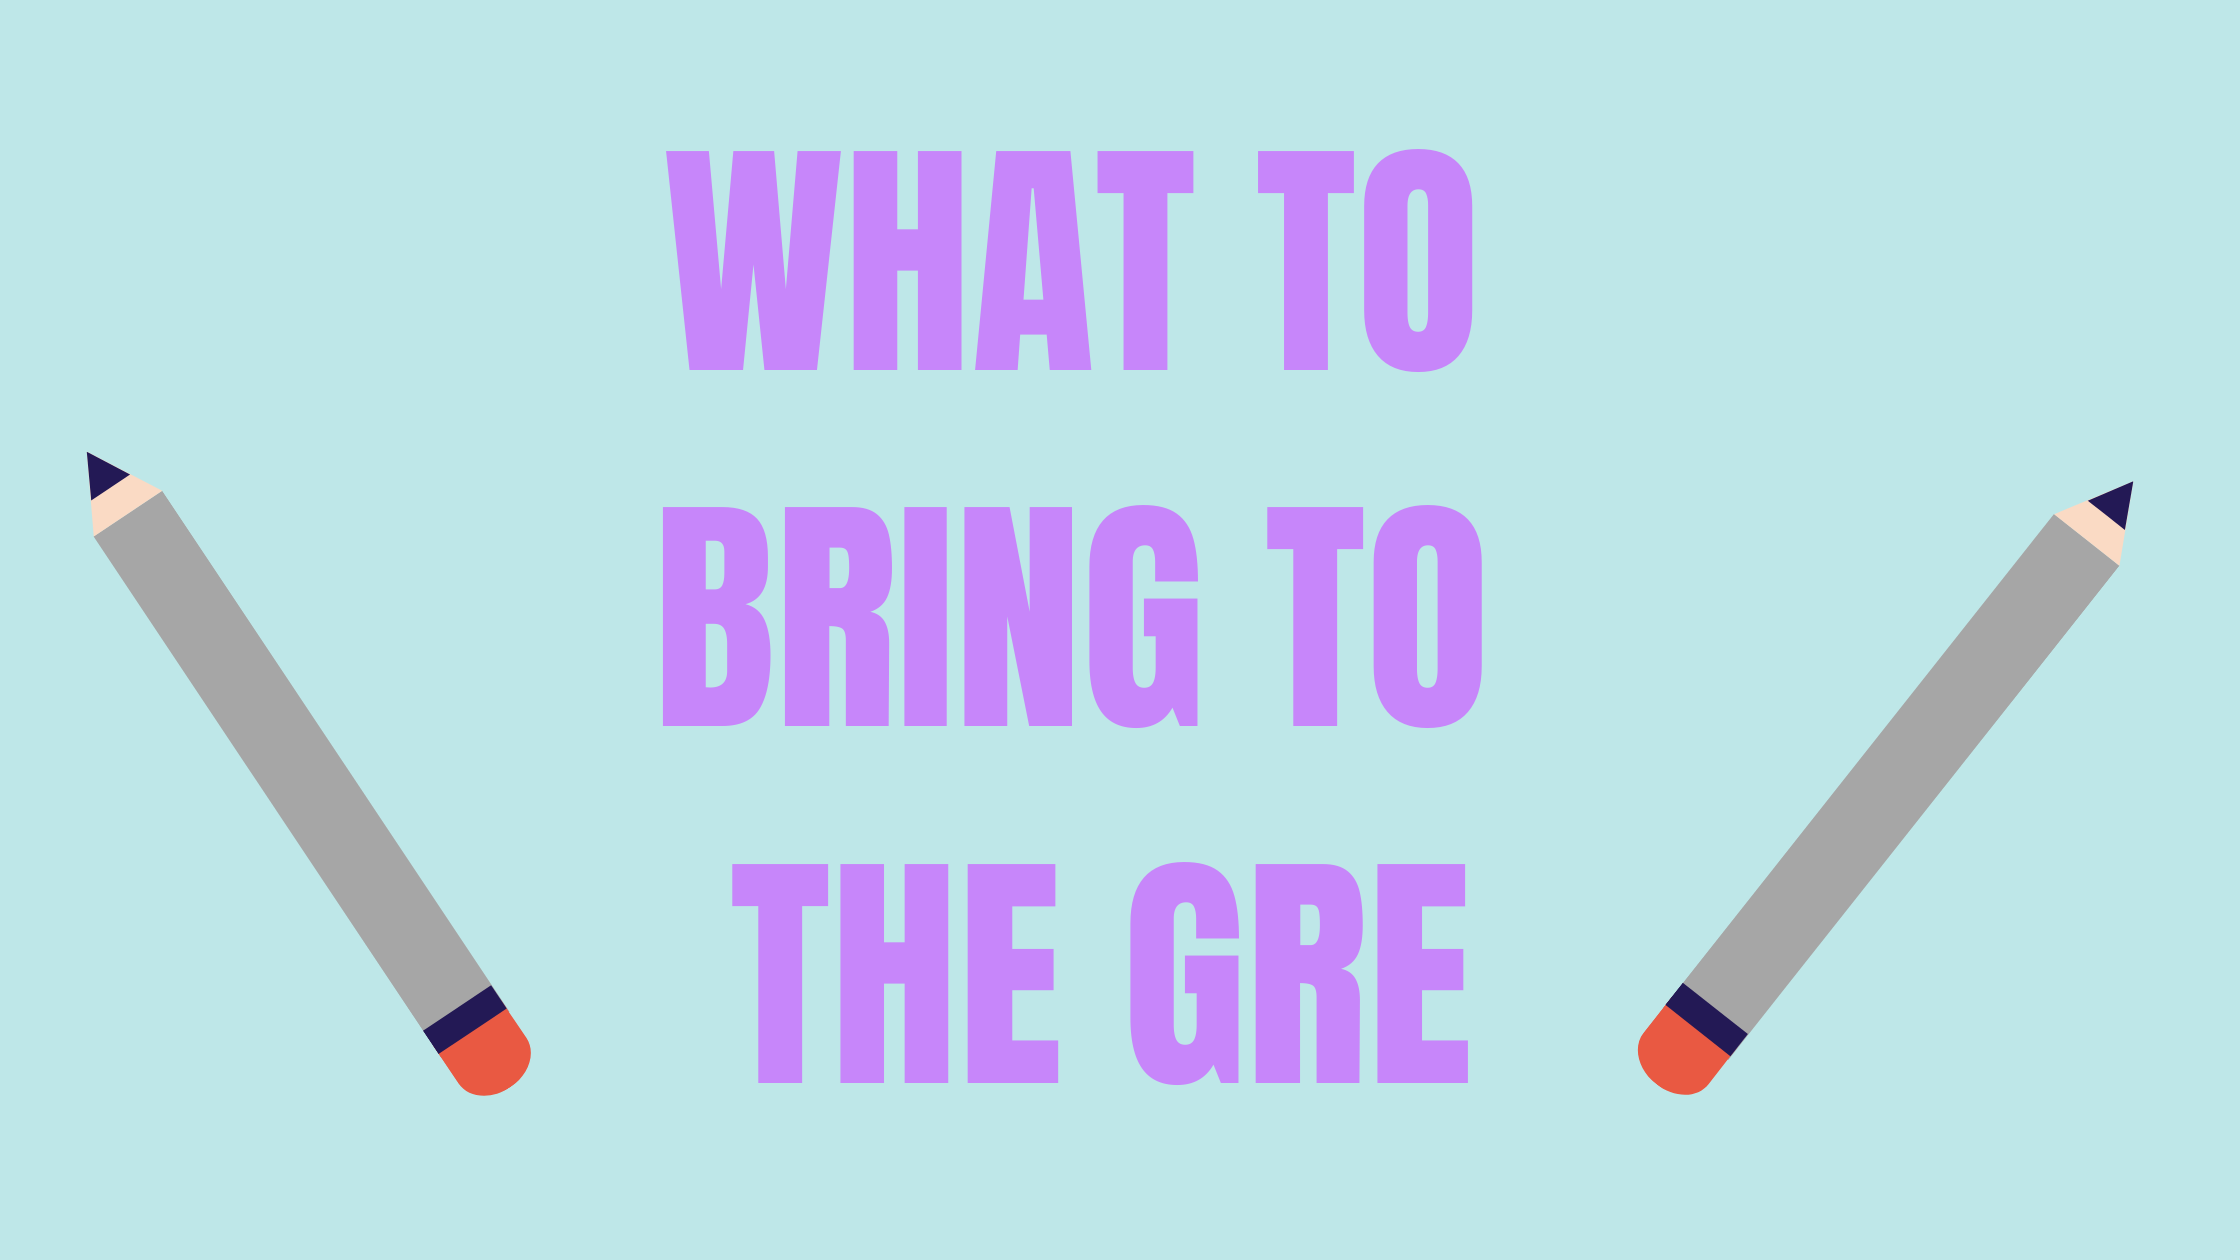 What to Bring to the GRE